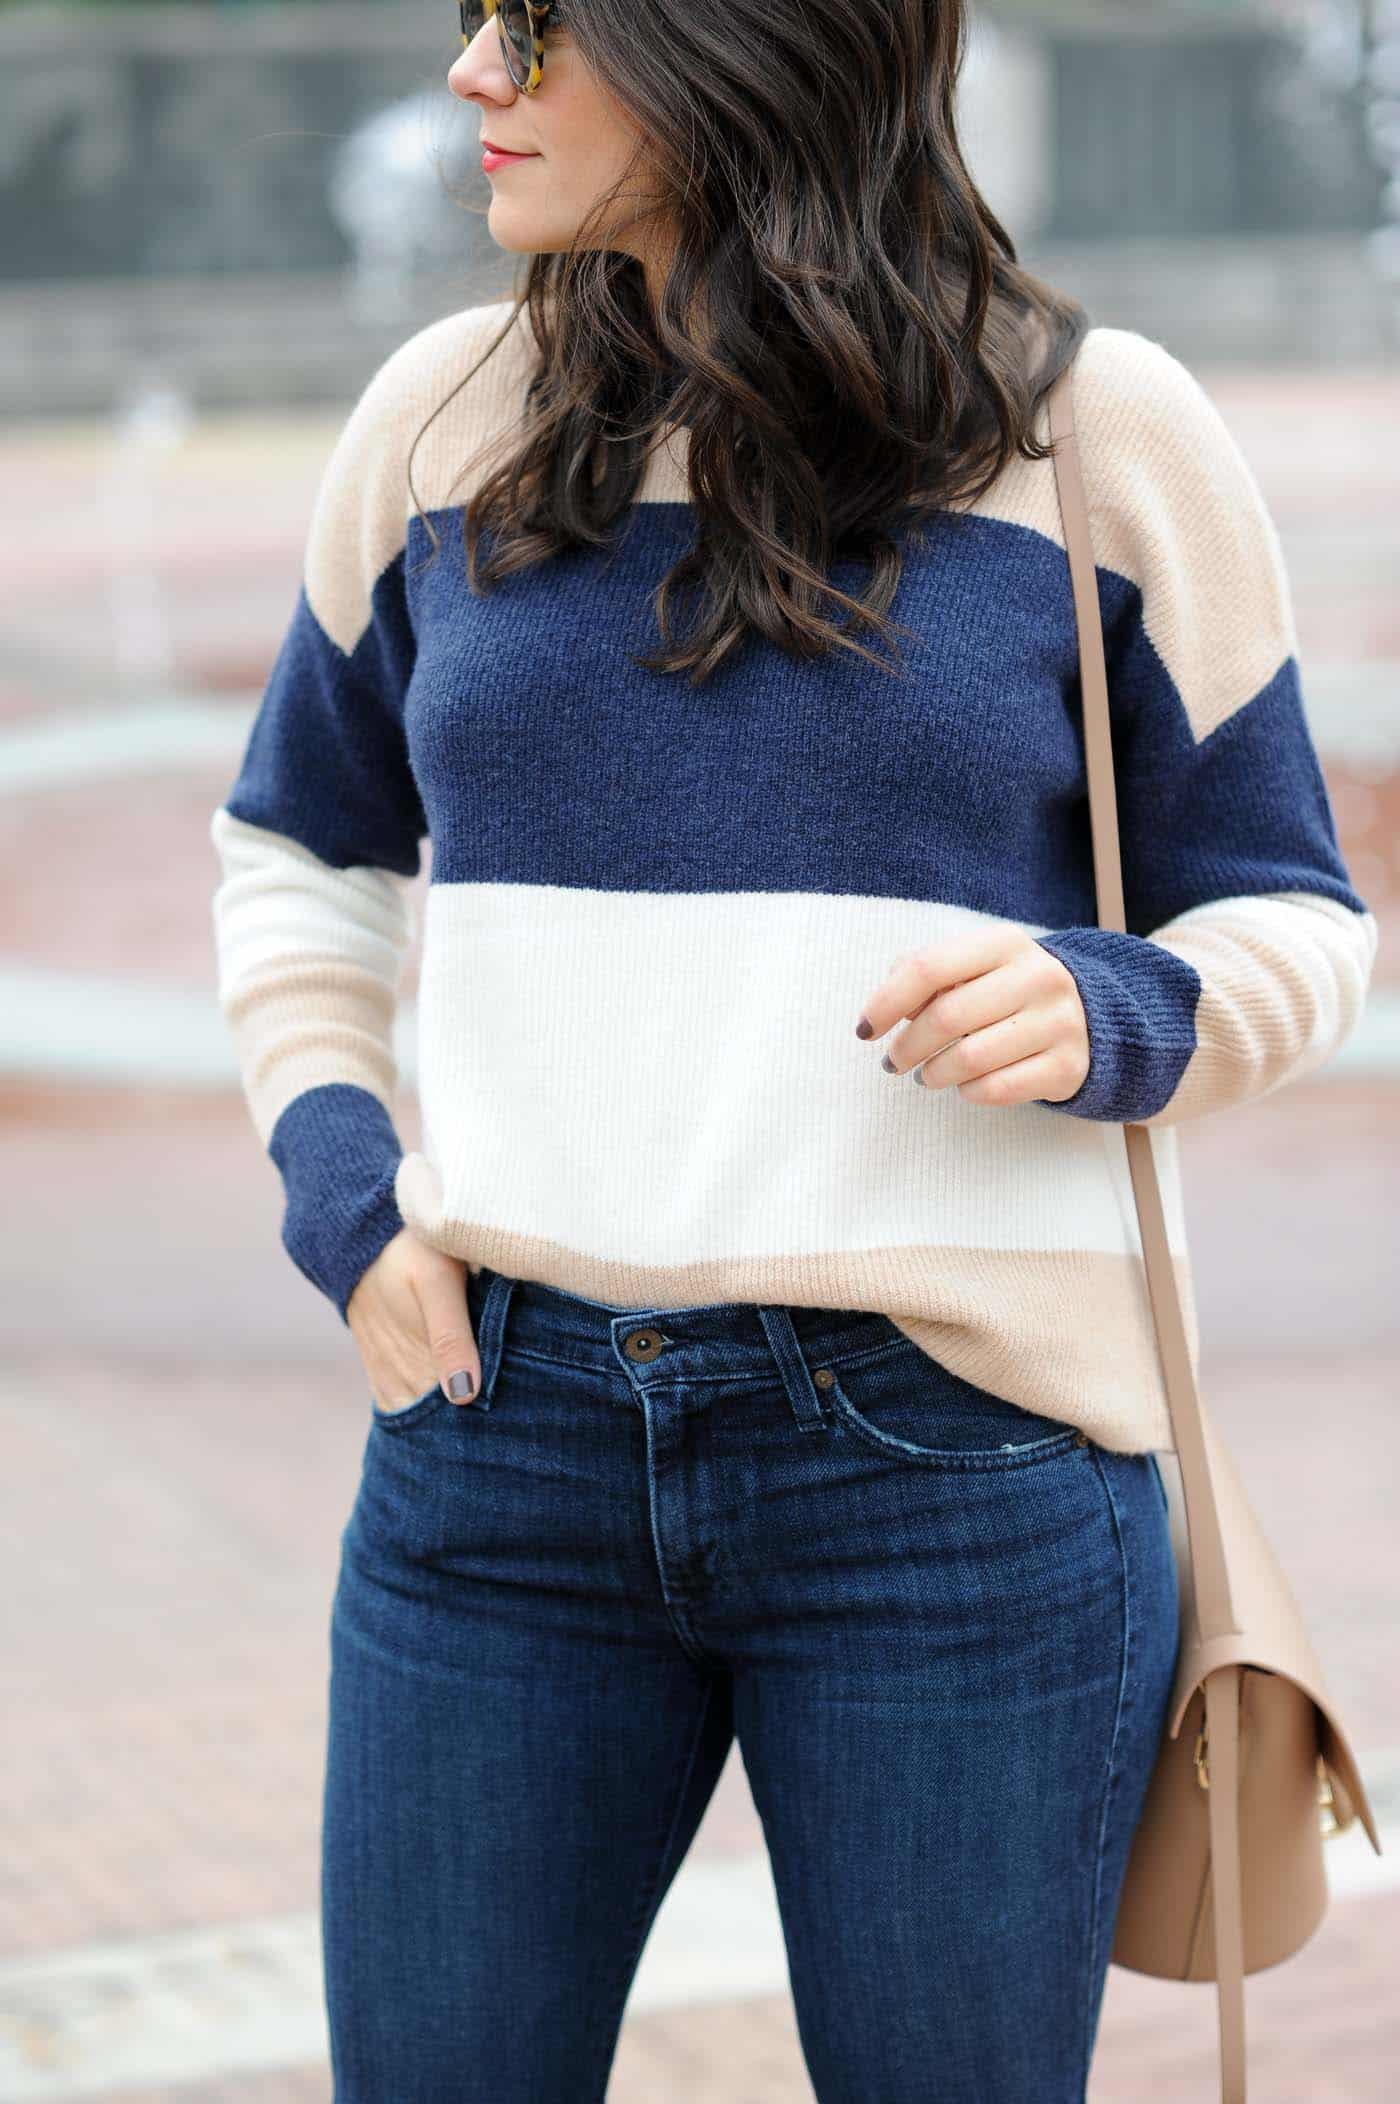 Madewell striped sweater, fall outfits - My Style Vita @mystylevita